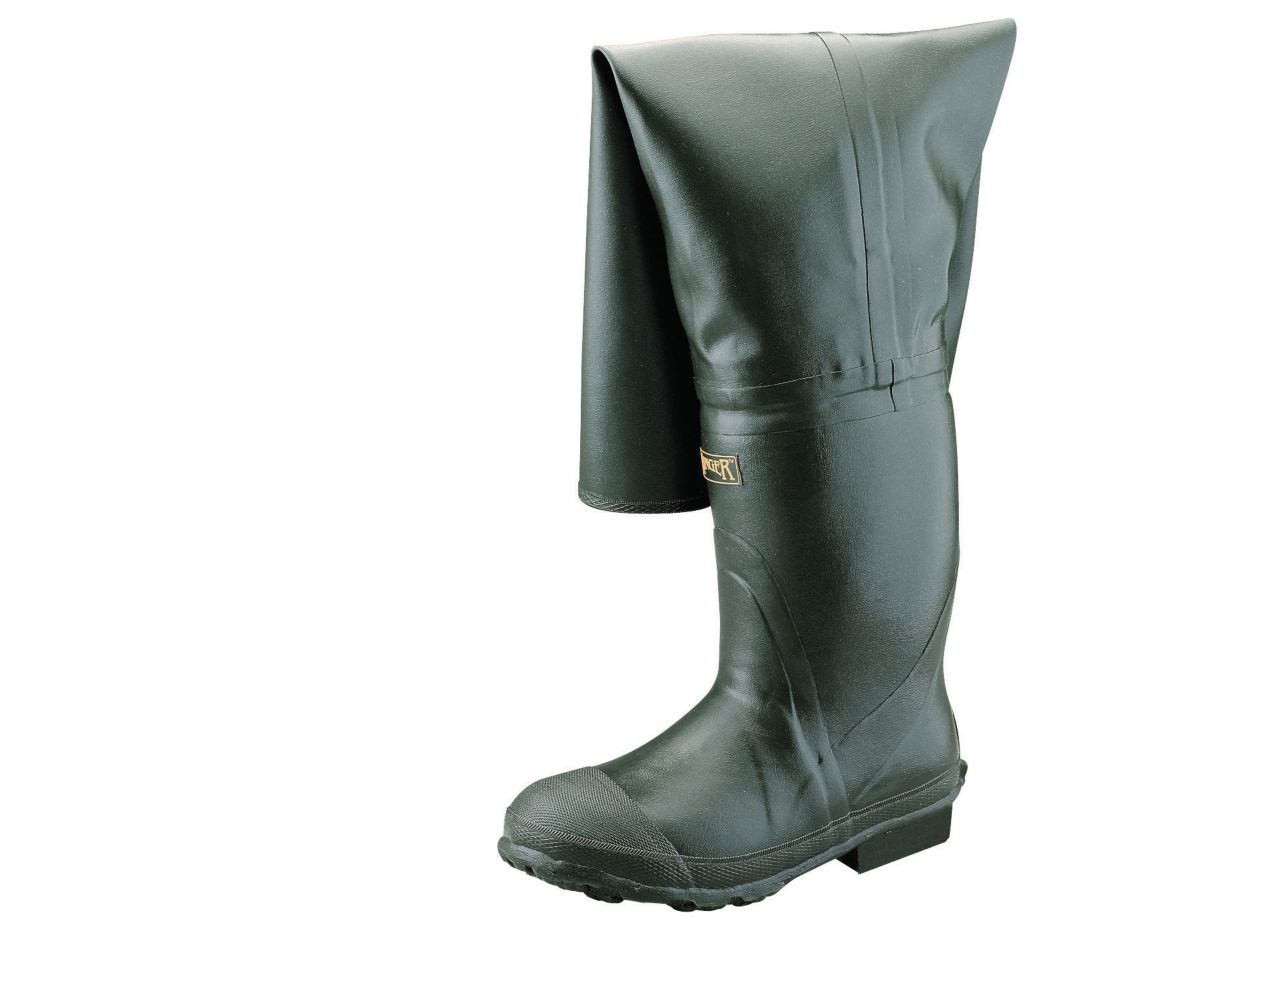 Ranger® Bullhead™ Rubber Hip Boot